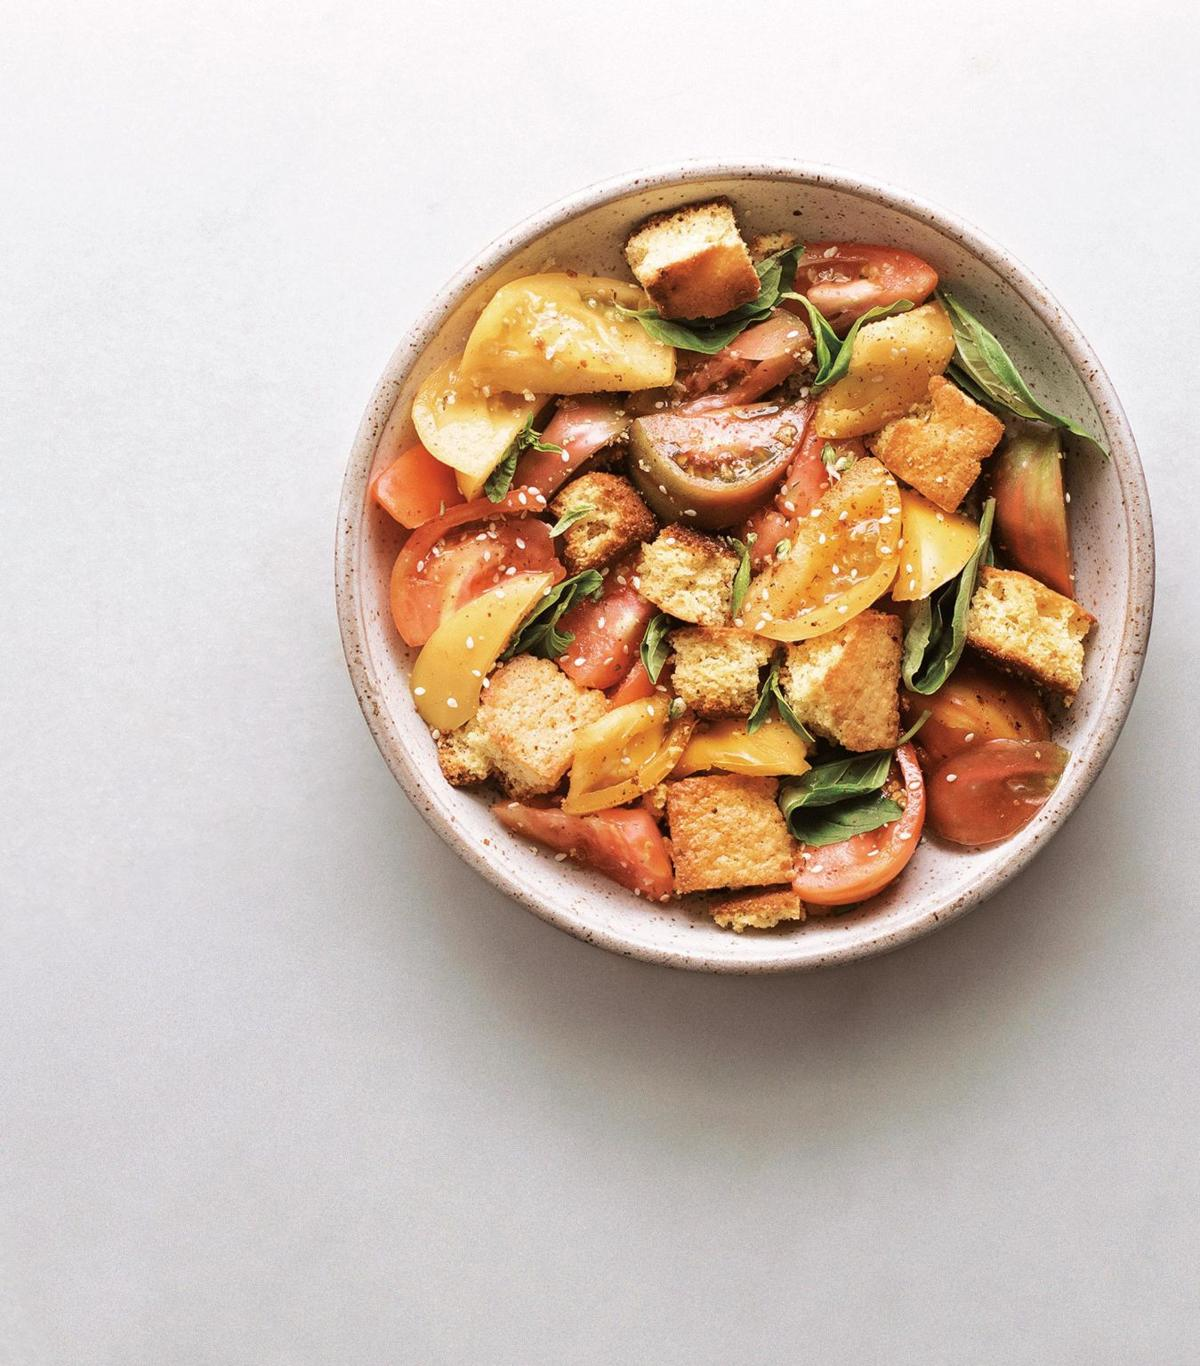 Stephen Fries: Fruits and veggies can easily carry a meal